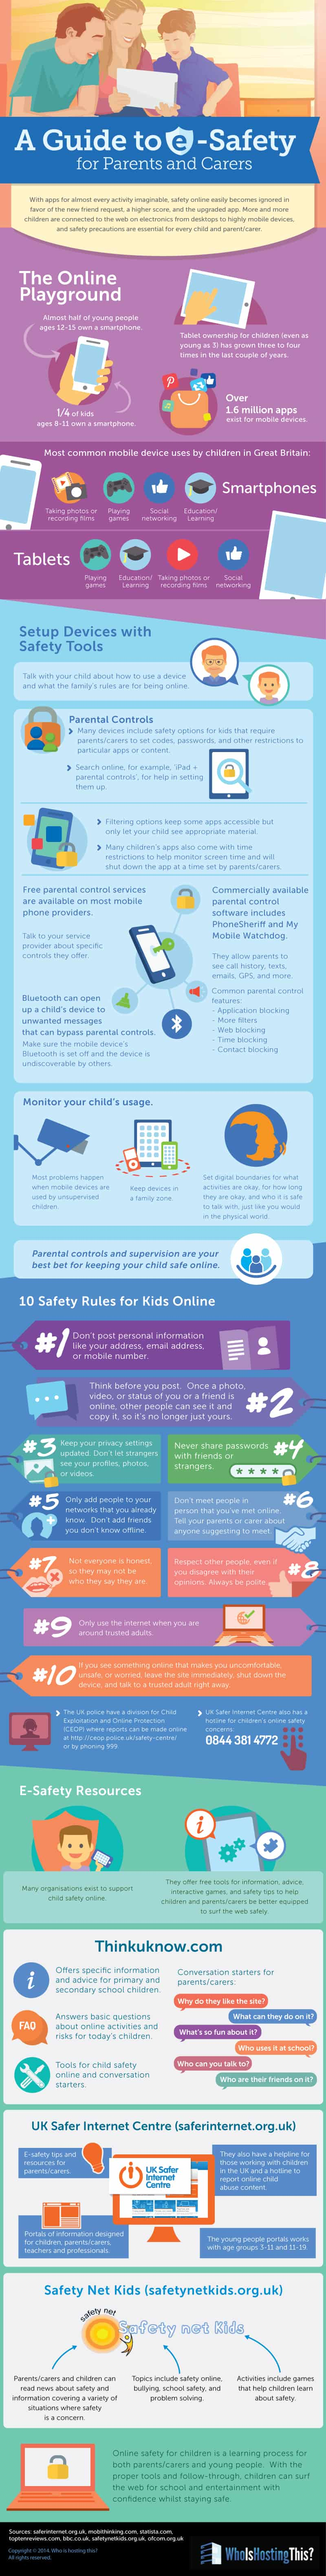 esafety-guide